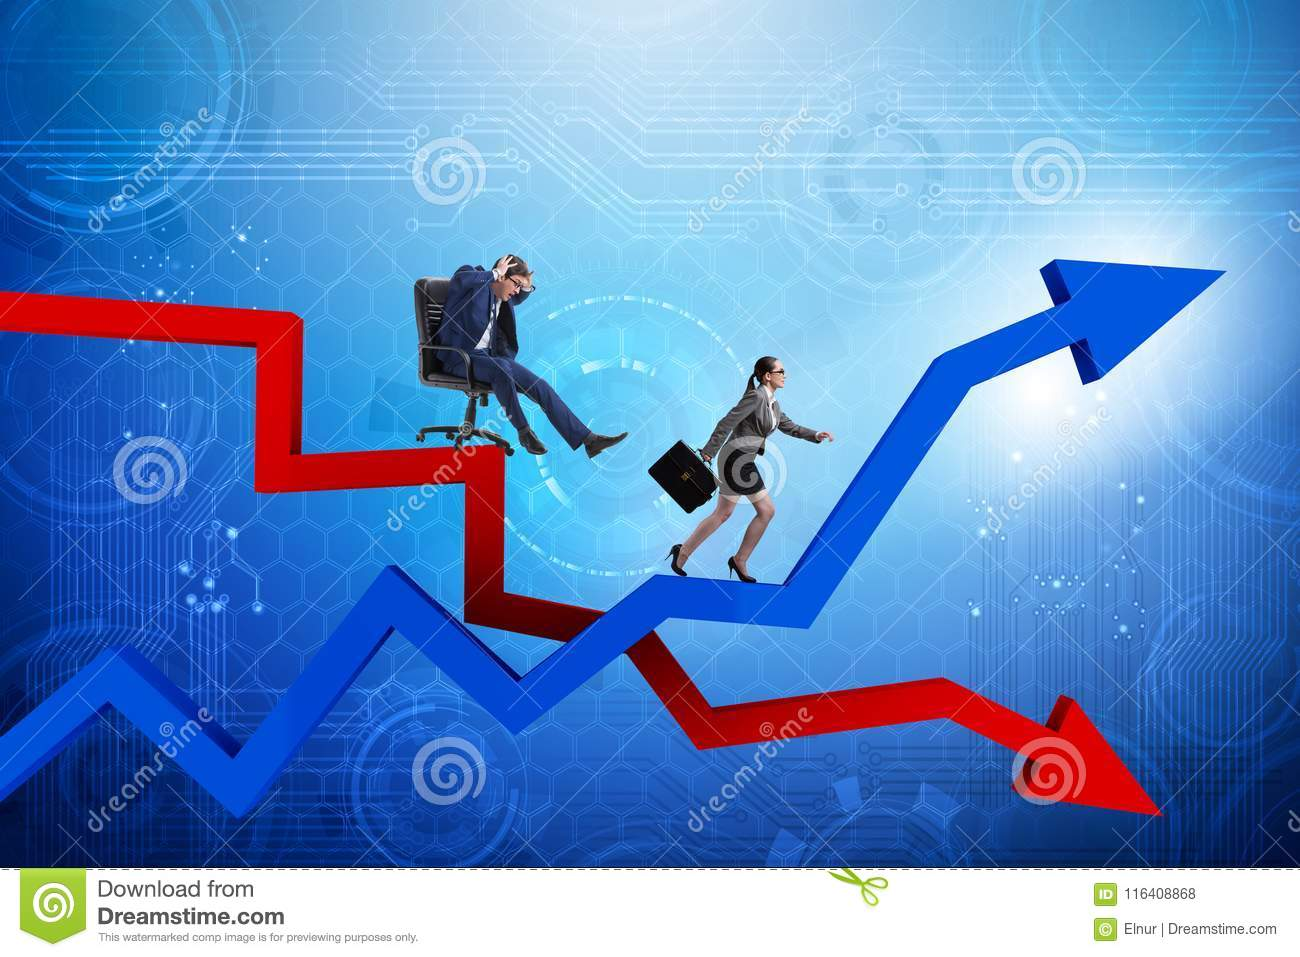 The growth and decline concept with businessmen